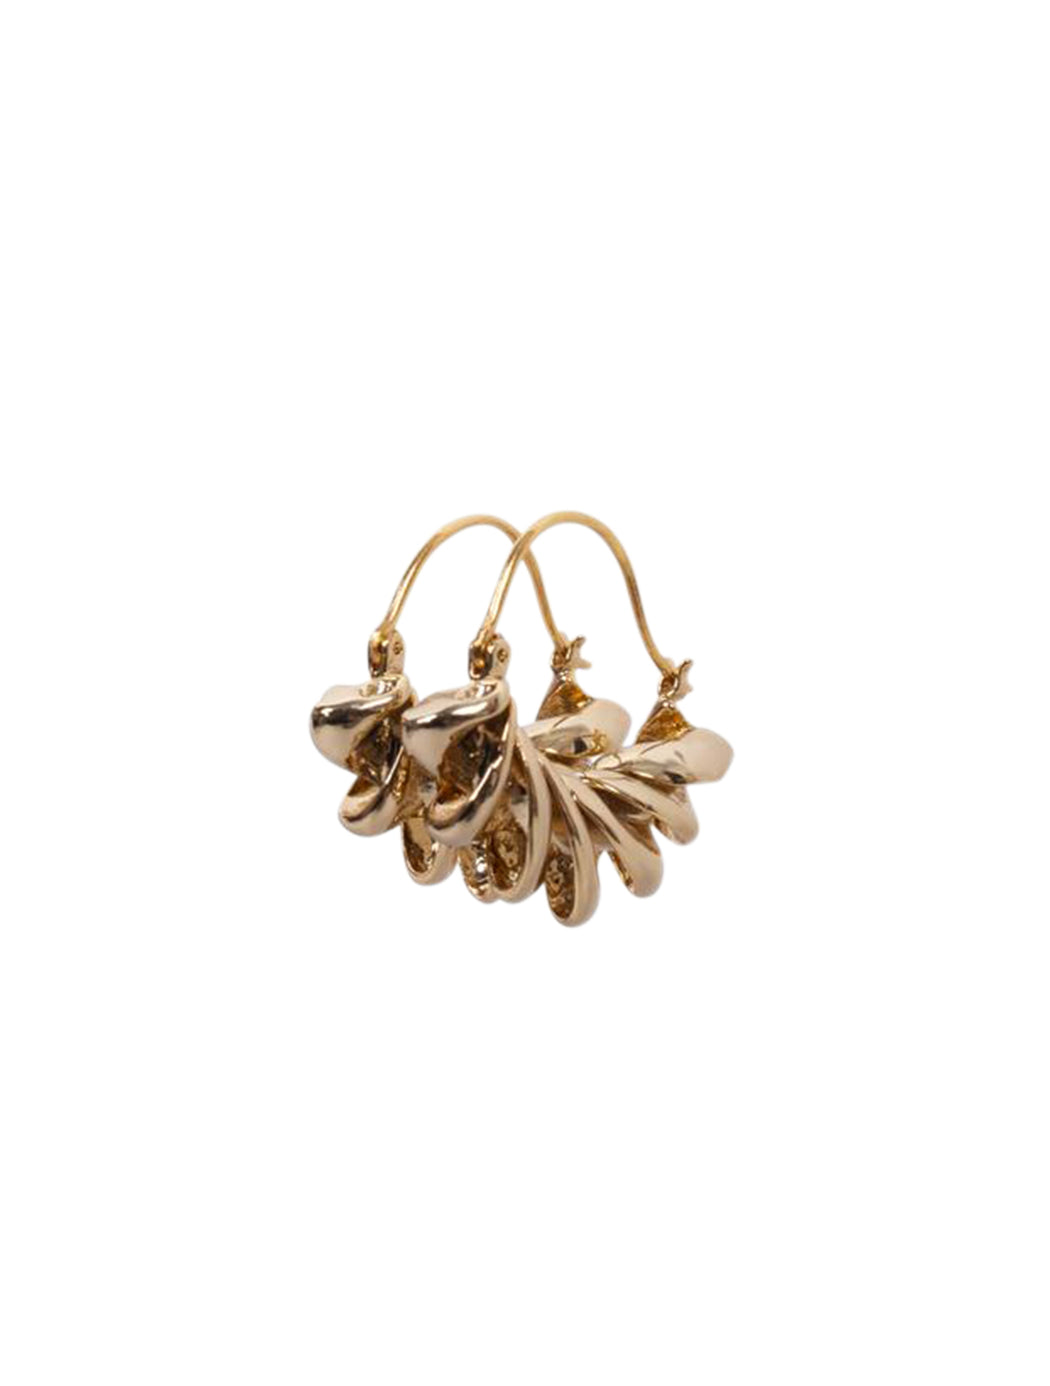 Fusilli Earrings